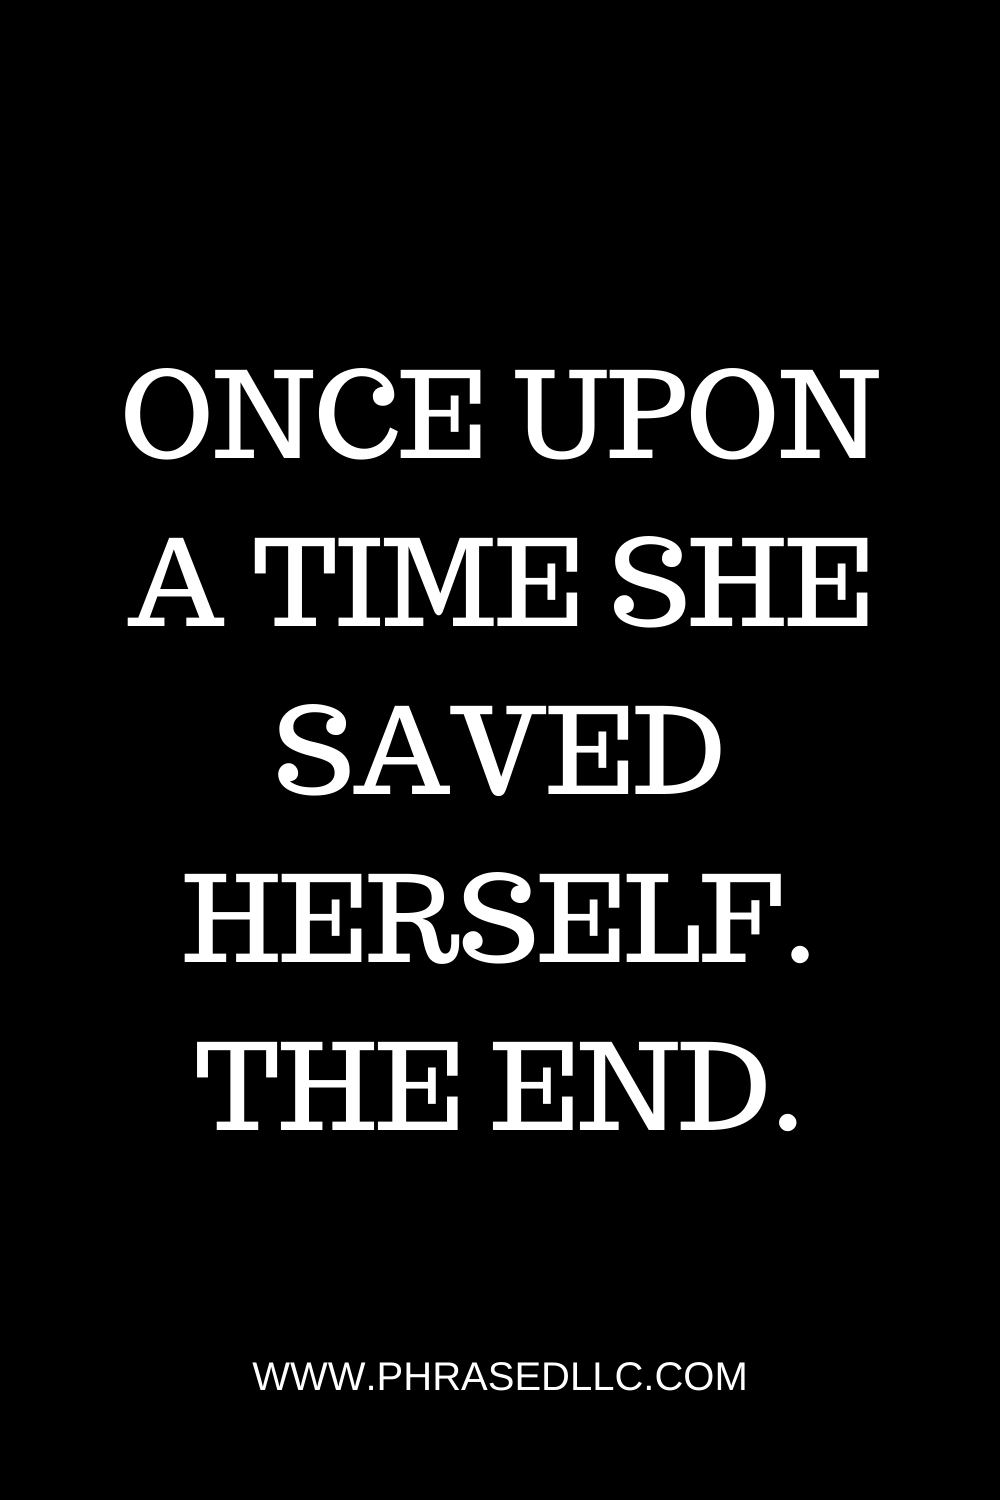 Short inspirational quote about the strength of women to save themself.